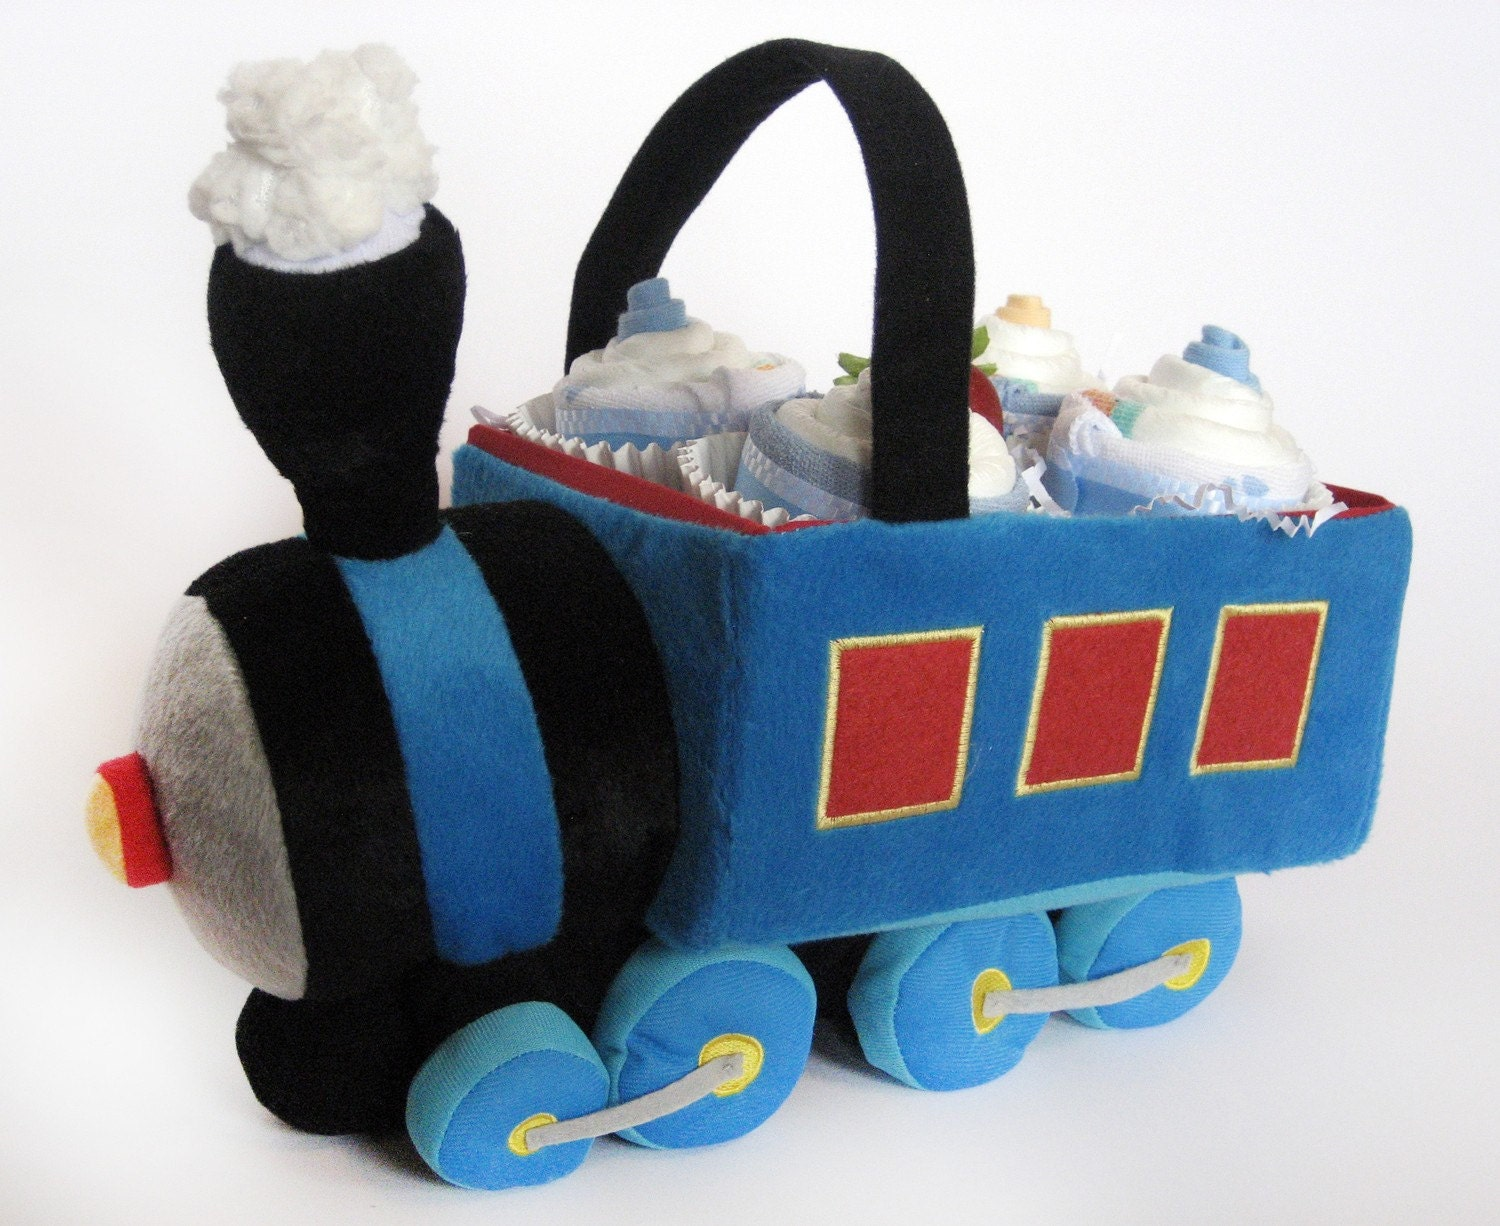 LIMITED EDITION - Choo choo train gift basket with diaper cupcakes